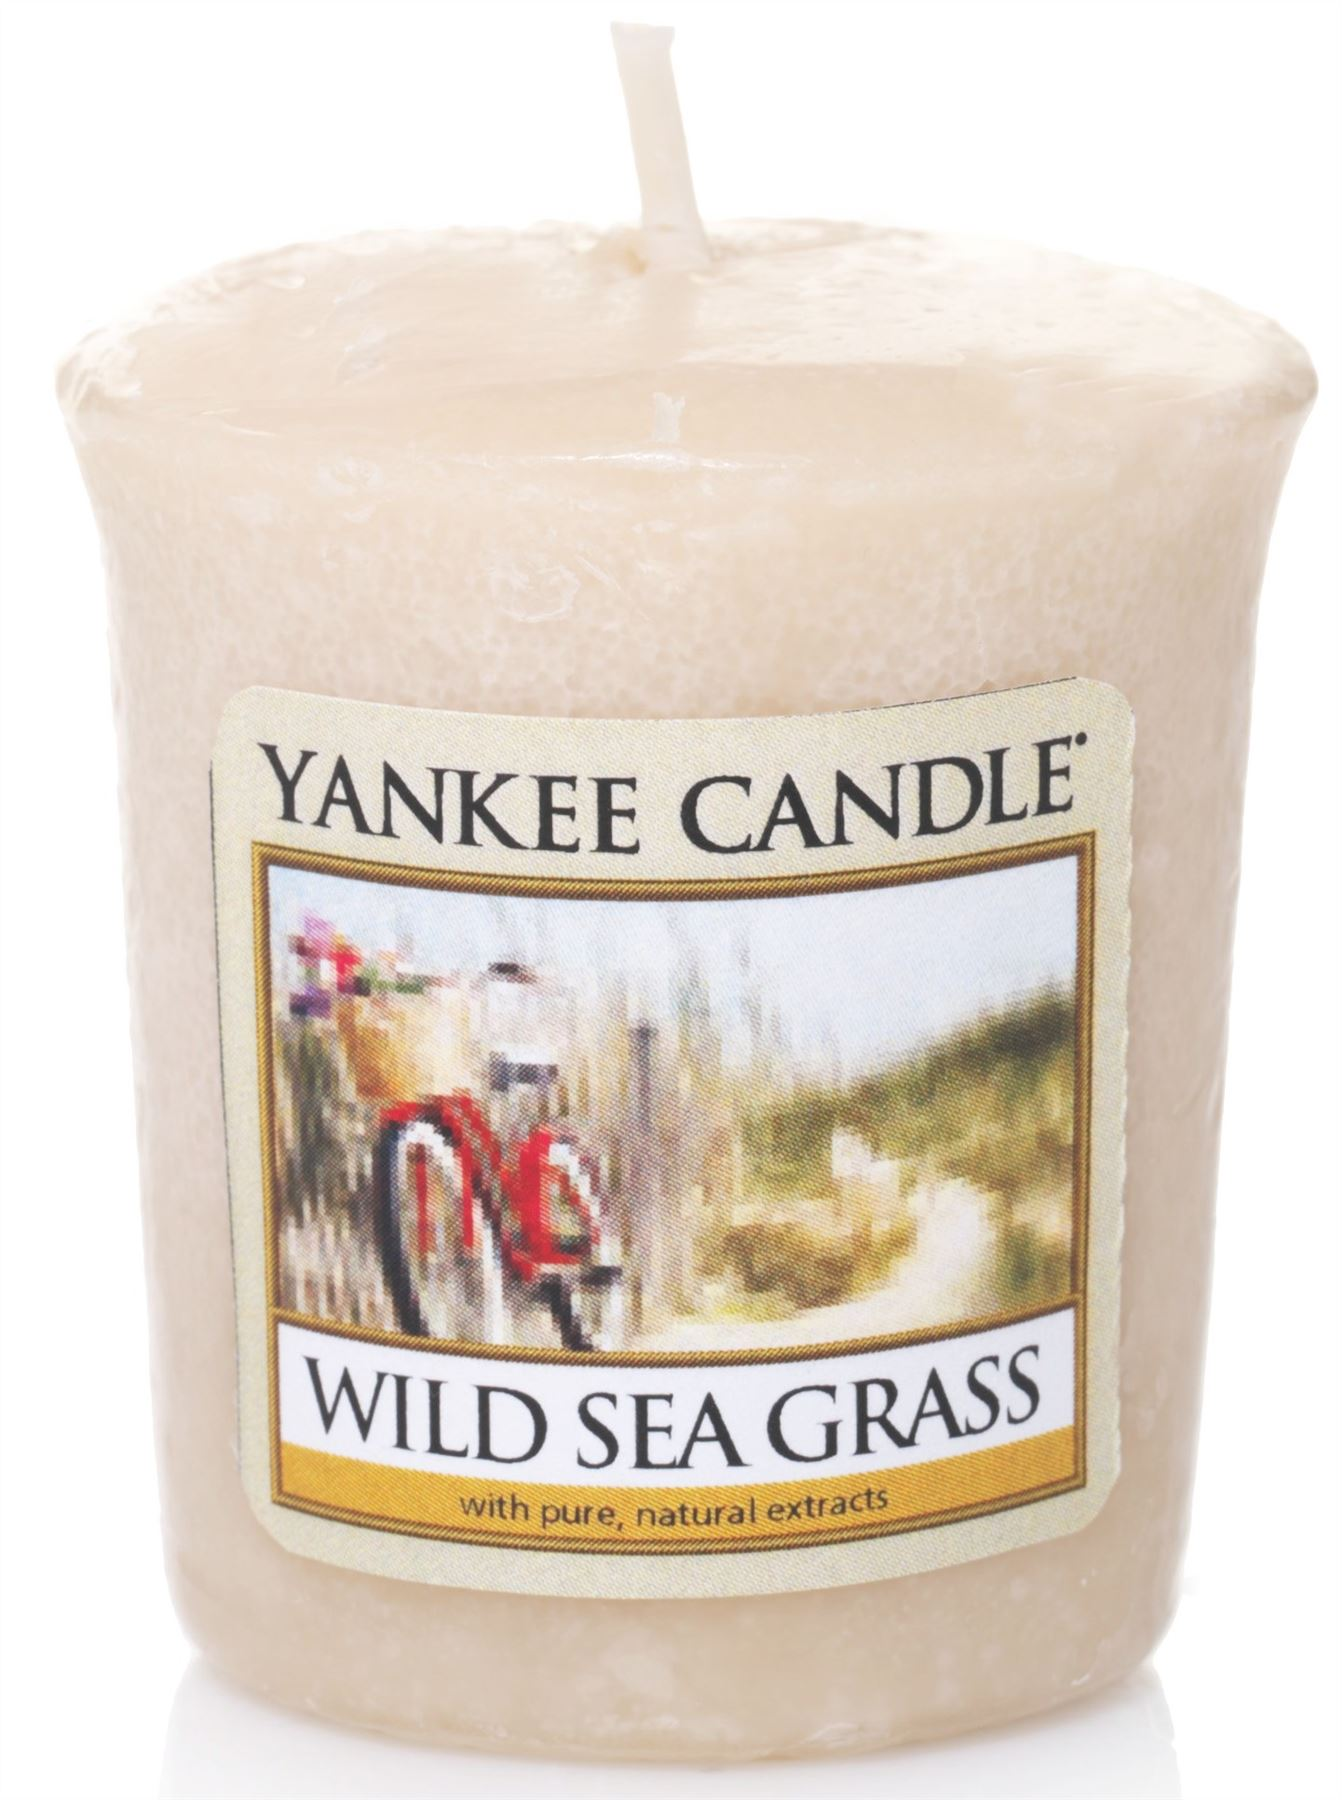 Yankee Candle discounts, goose creek, village, woodewick-GIFTS- home, family, occasions, wedding, baby, seasonal - quality & value.